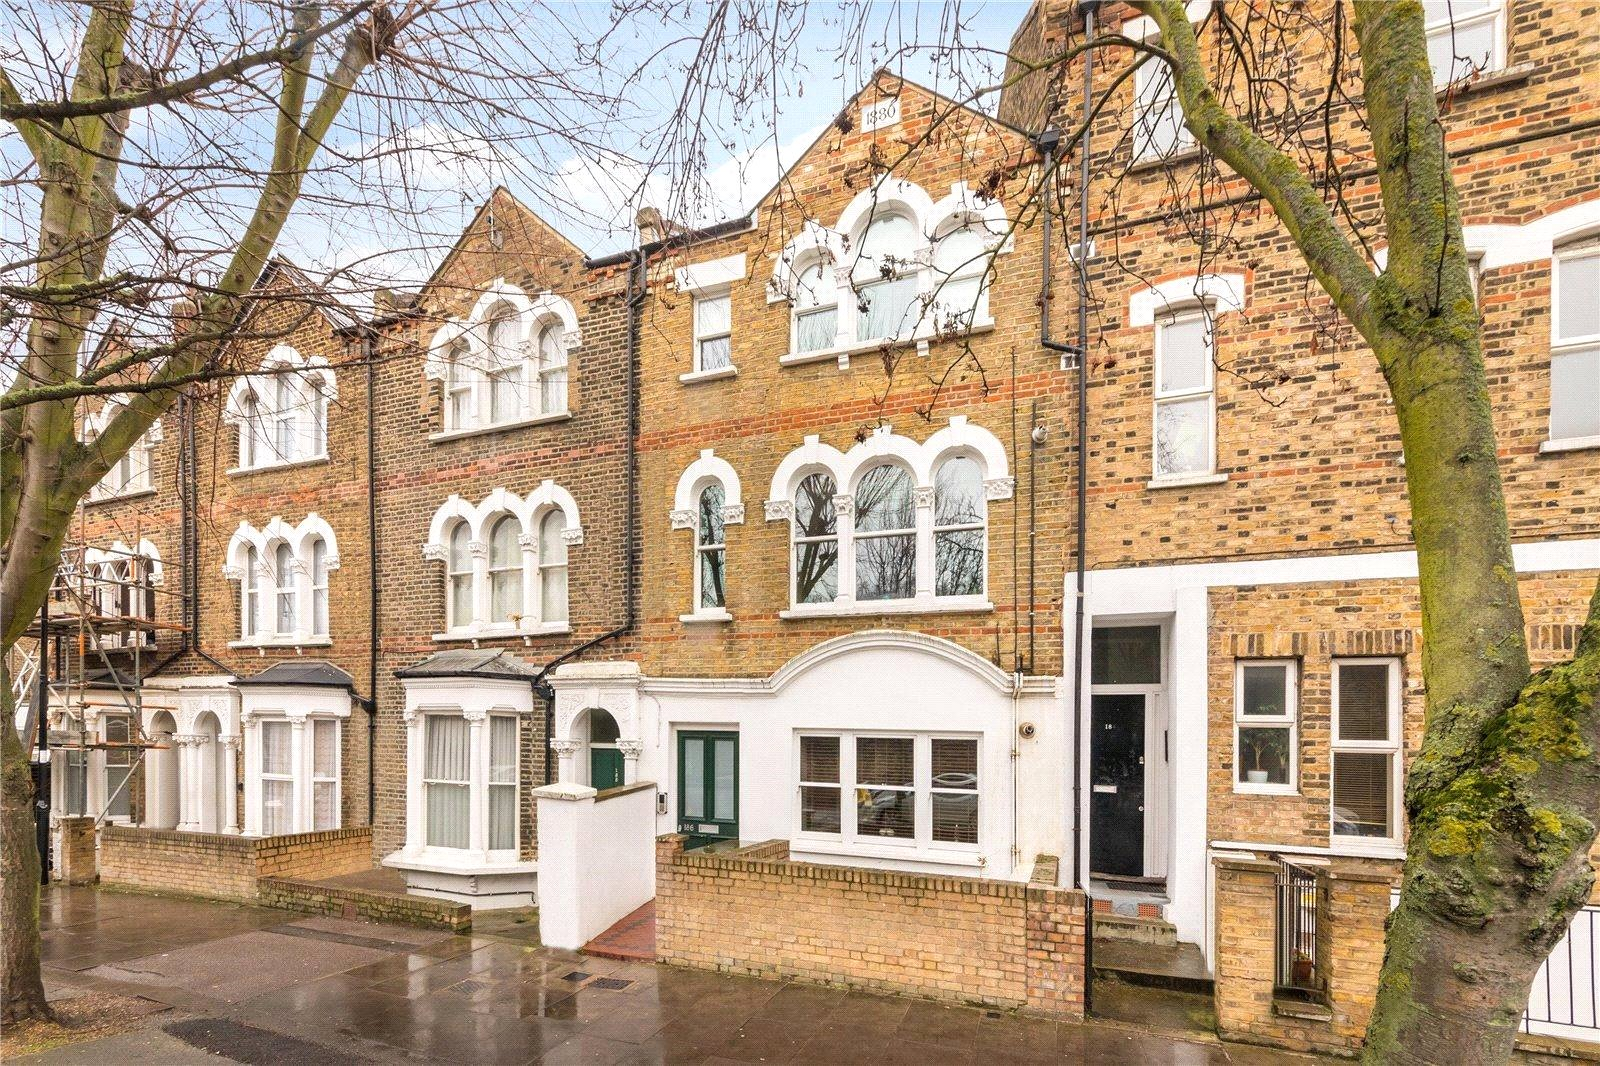 2 bed apartment to rent in Arsenal, N5 1LU 6